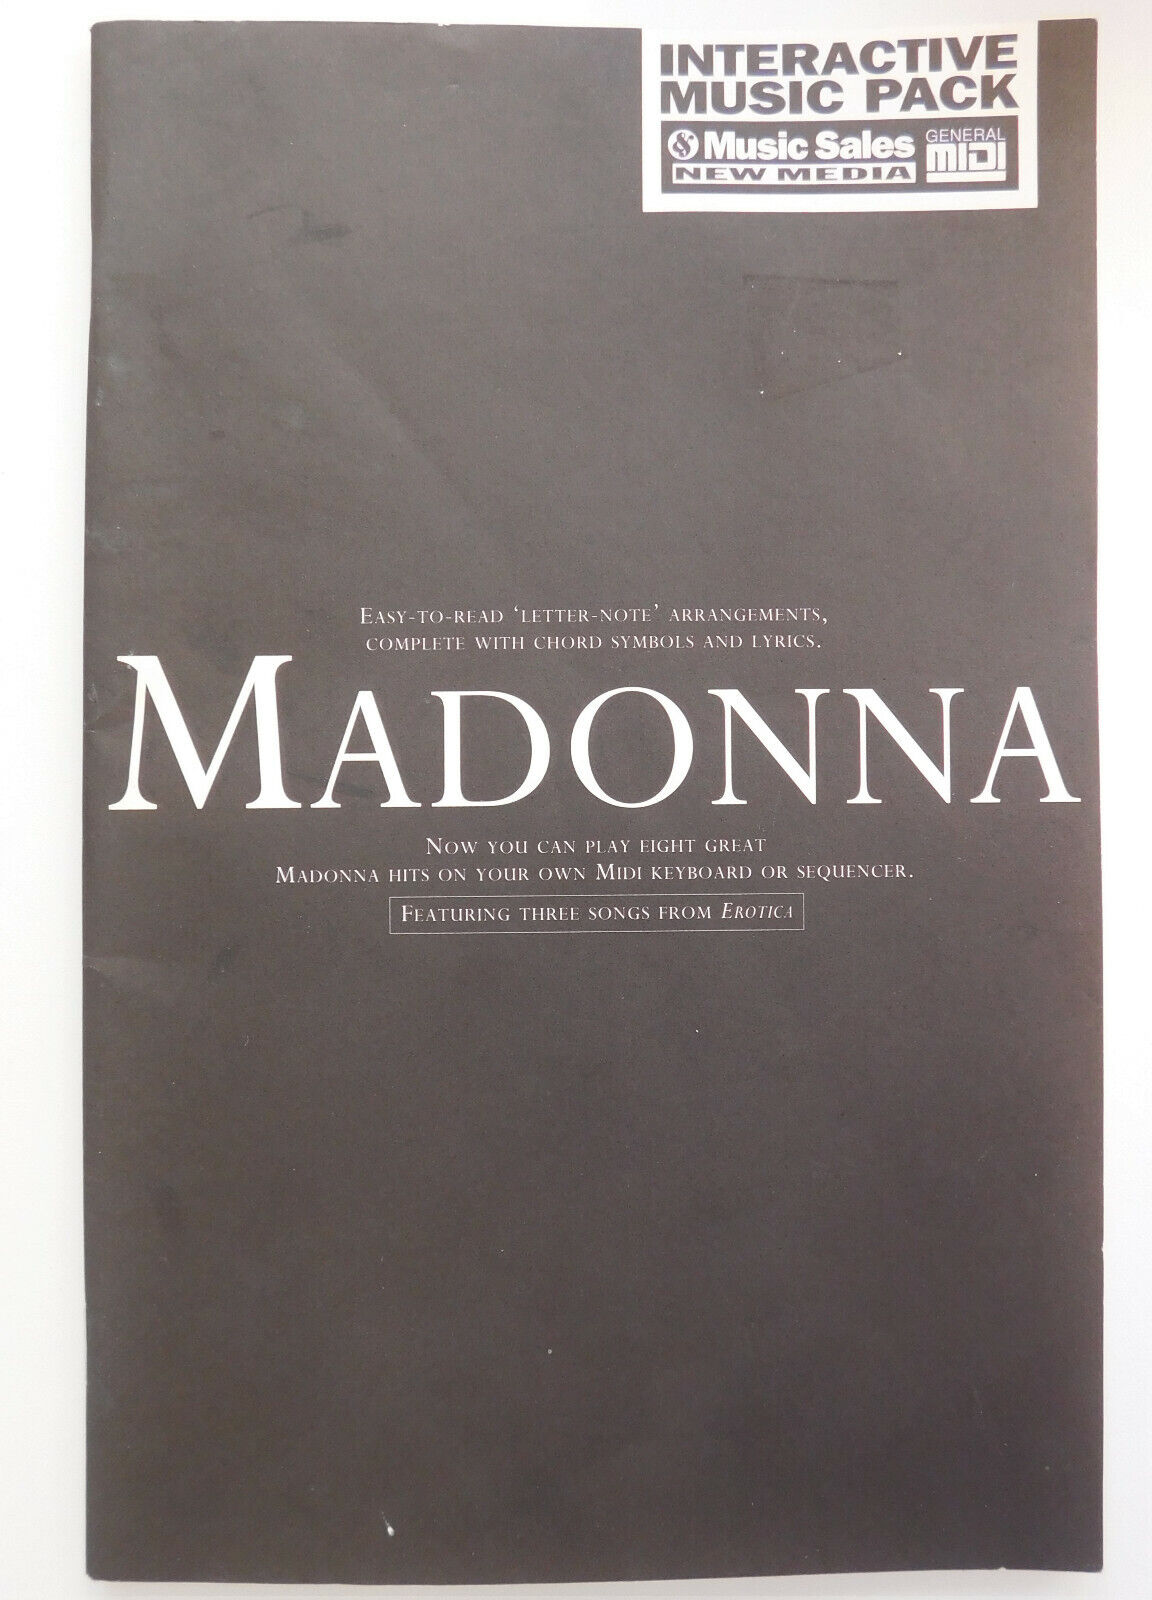 Madonna Midi Keyboard music book 8 songs Rescue Me Like a Virgin Rain BOOK ONLY